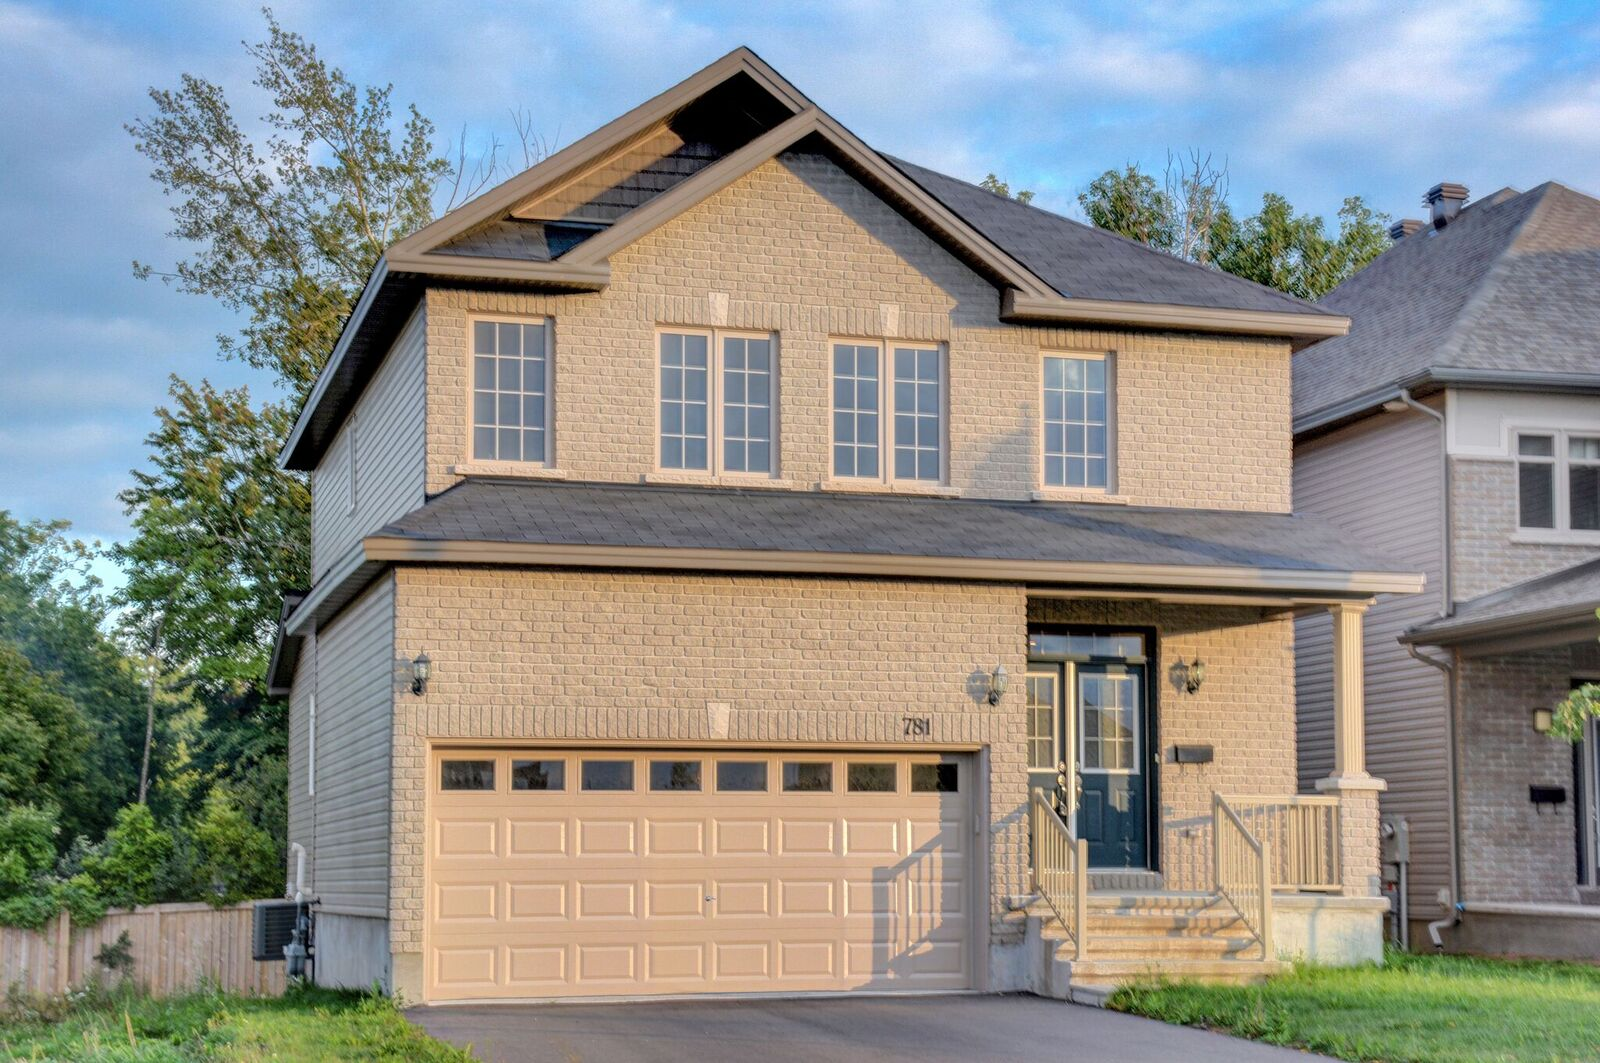 781 Fiddlehead St - Stunning Detached Home on a Wider Premium Lot in Findlay Creek